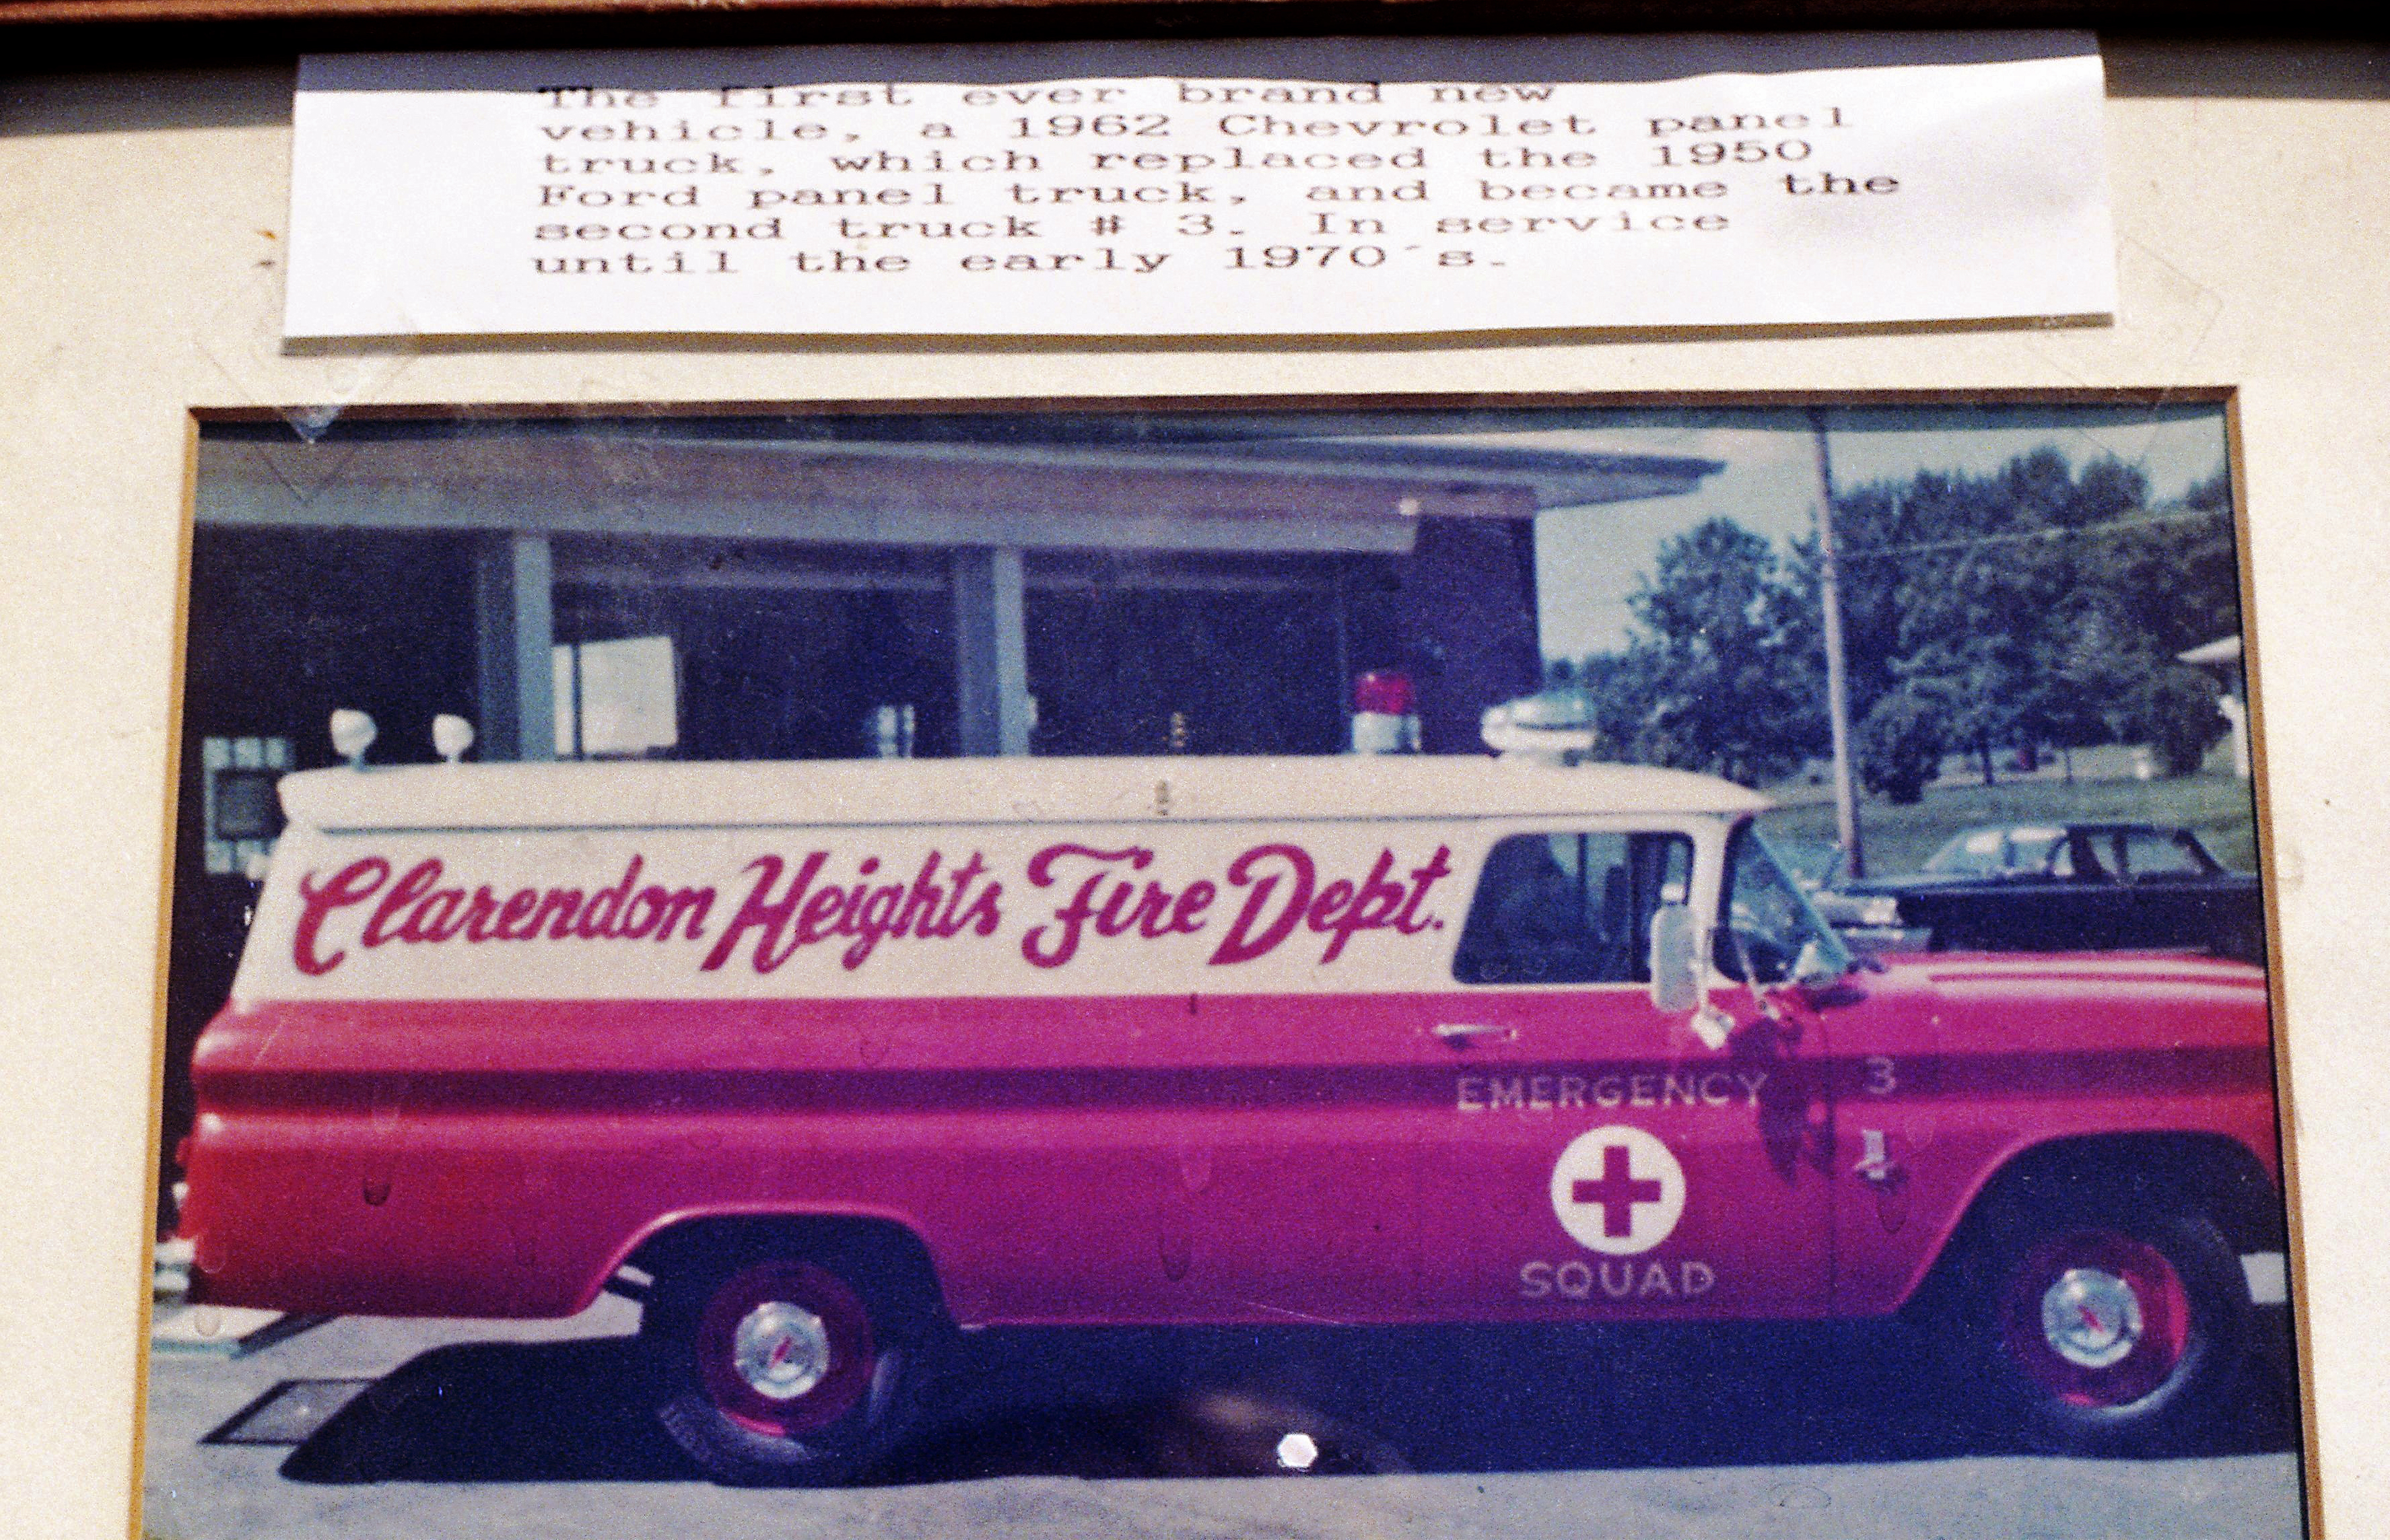 CLARENDON HEIGHTS 1962 CHEVY PANELVAN FIRST EMERGENCY SQUAD